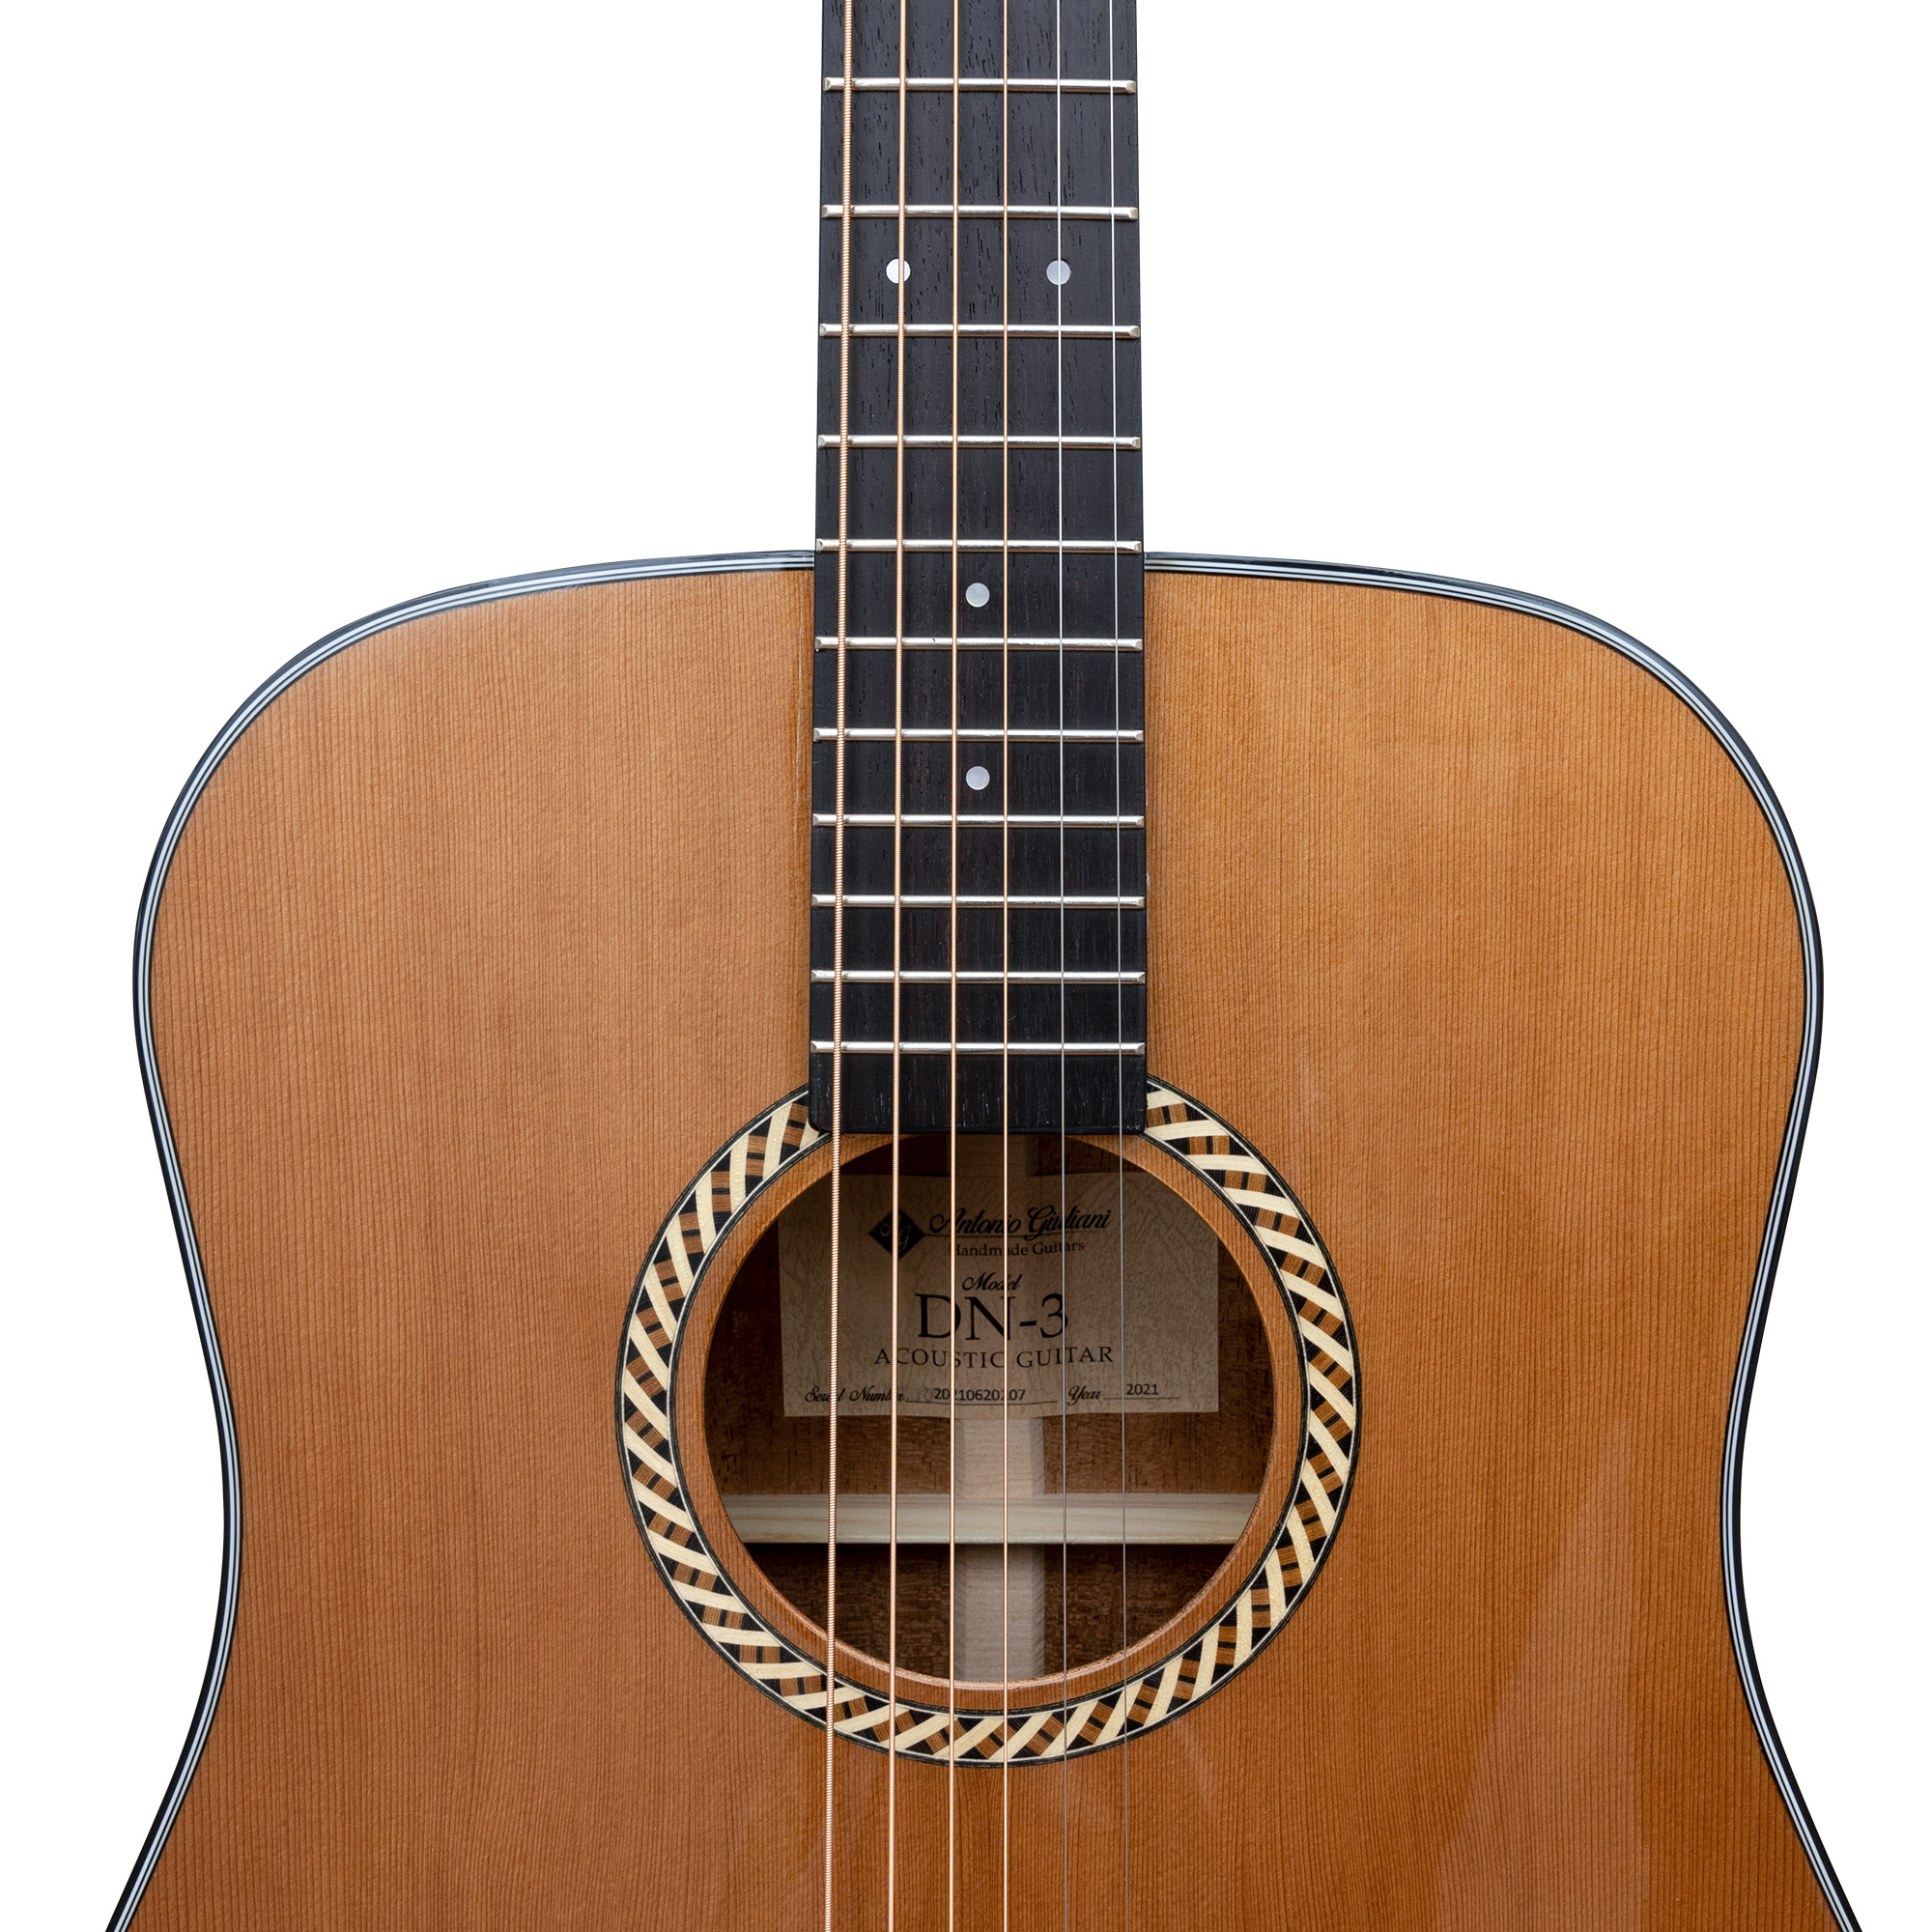 Antonio Giuliani DN-3 Steel-String Dreadnought Acoustic Guitar Outfit in action